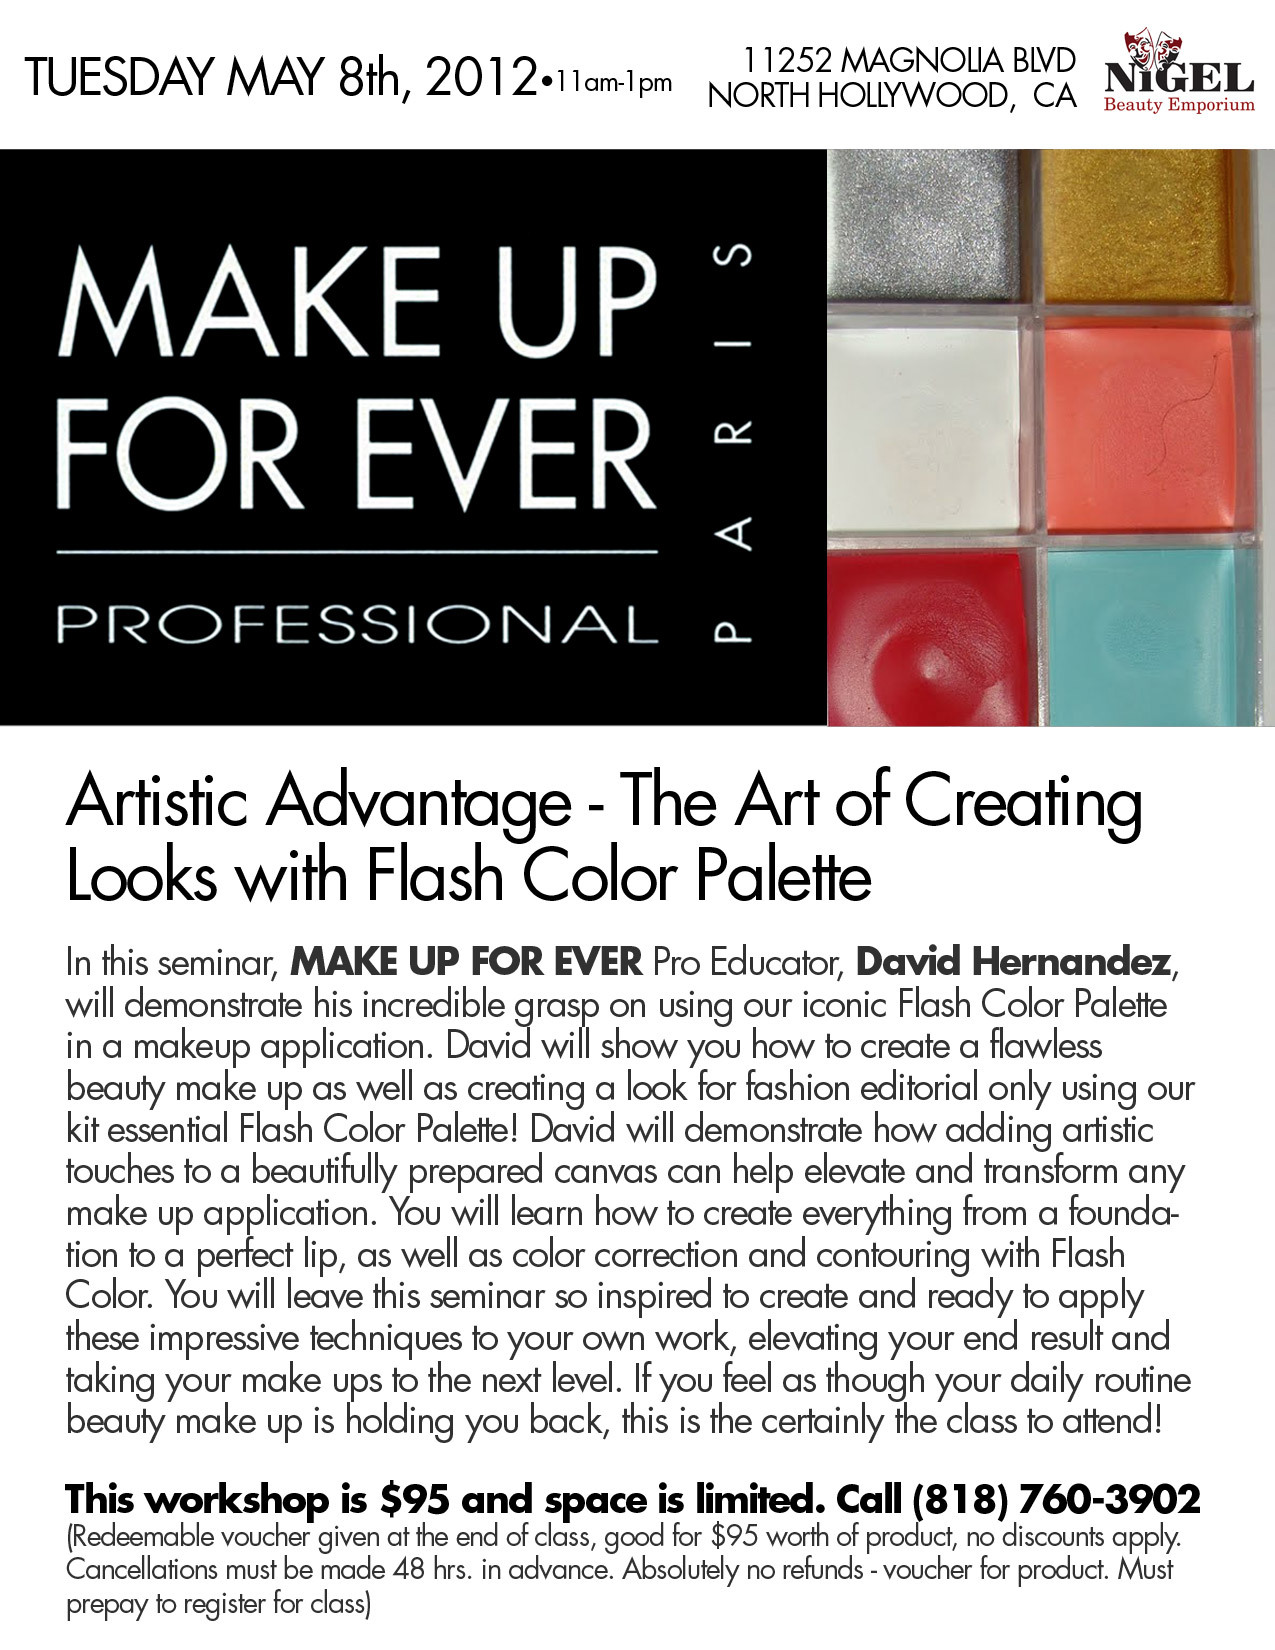 In this seminar, MAKE UP FOR EVER Pro Educator, David Hernandez, will demonstrate his incredible grasp on using our iconic Flash Color Palette in a makeup application. David will show you how to create a flawless beauty make up as well as creating a look for fashion editorial only using our kit essential Flash Color Palette! David will demonstrate how adding artistic touches to a beautifully prepared canvas can help elevate and transform any make up application. You will learn how to create everything from a foundation to a perfect lip, as well as color correction and contouring with Flash Color. You will leave this seminar so inspired to create and ready to apply these impressive techniques to your own work, elevating your end result and taking your make ups to the next level. If you feel as though your daily routine beauty make up is holding you back, this is the certainly the class to attend!www.nigelbeauty.comwww.makeupforeverusa.com